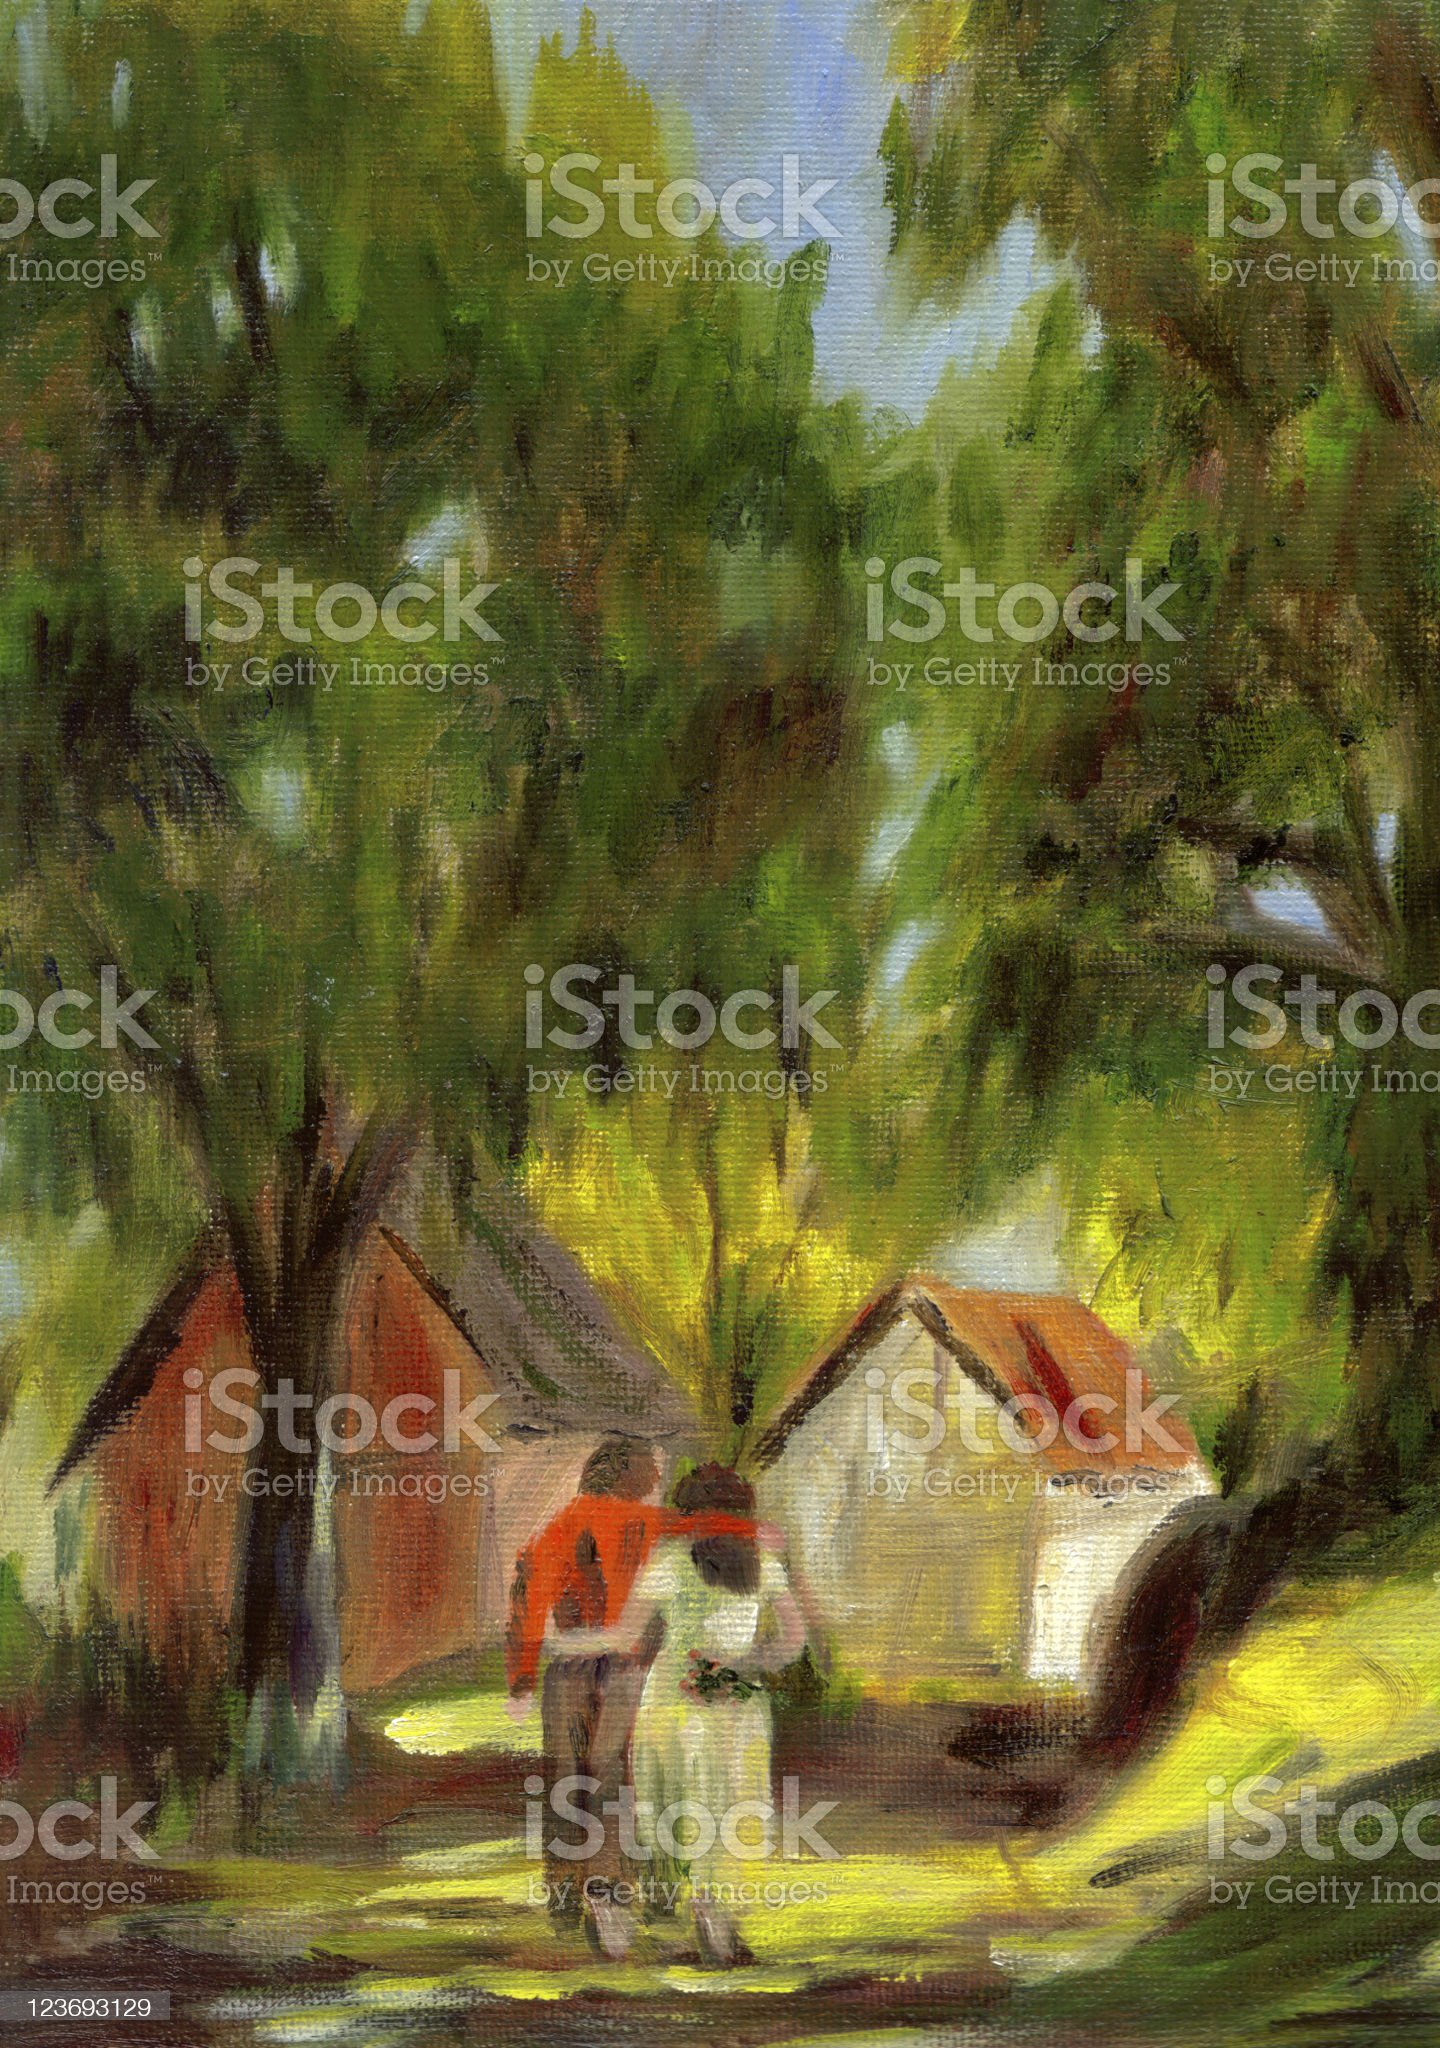 Painting  couple strolling lane in woods.  Farm buildings background. royalty-free stock vector art